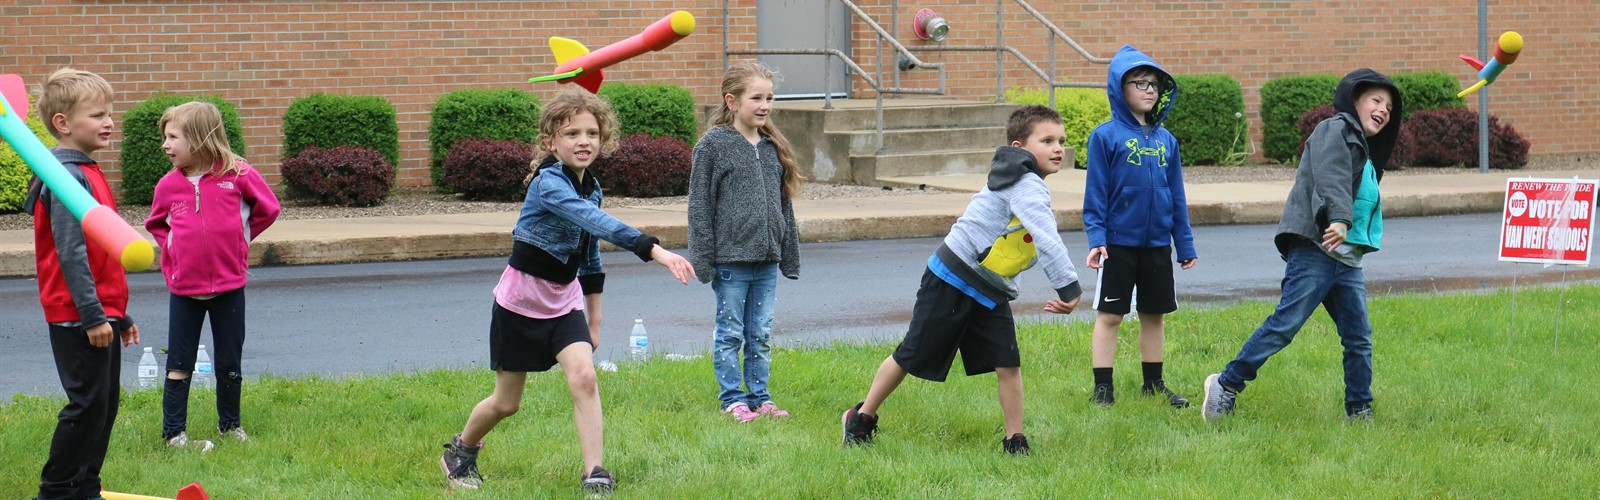 ECC students throwing foam rockets during field day